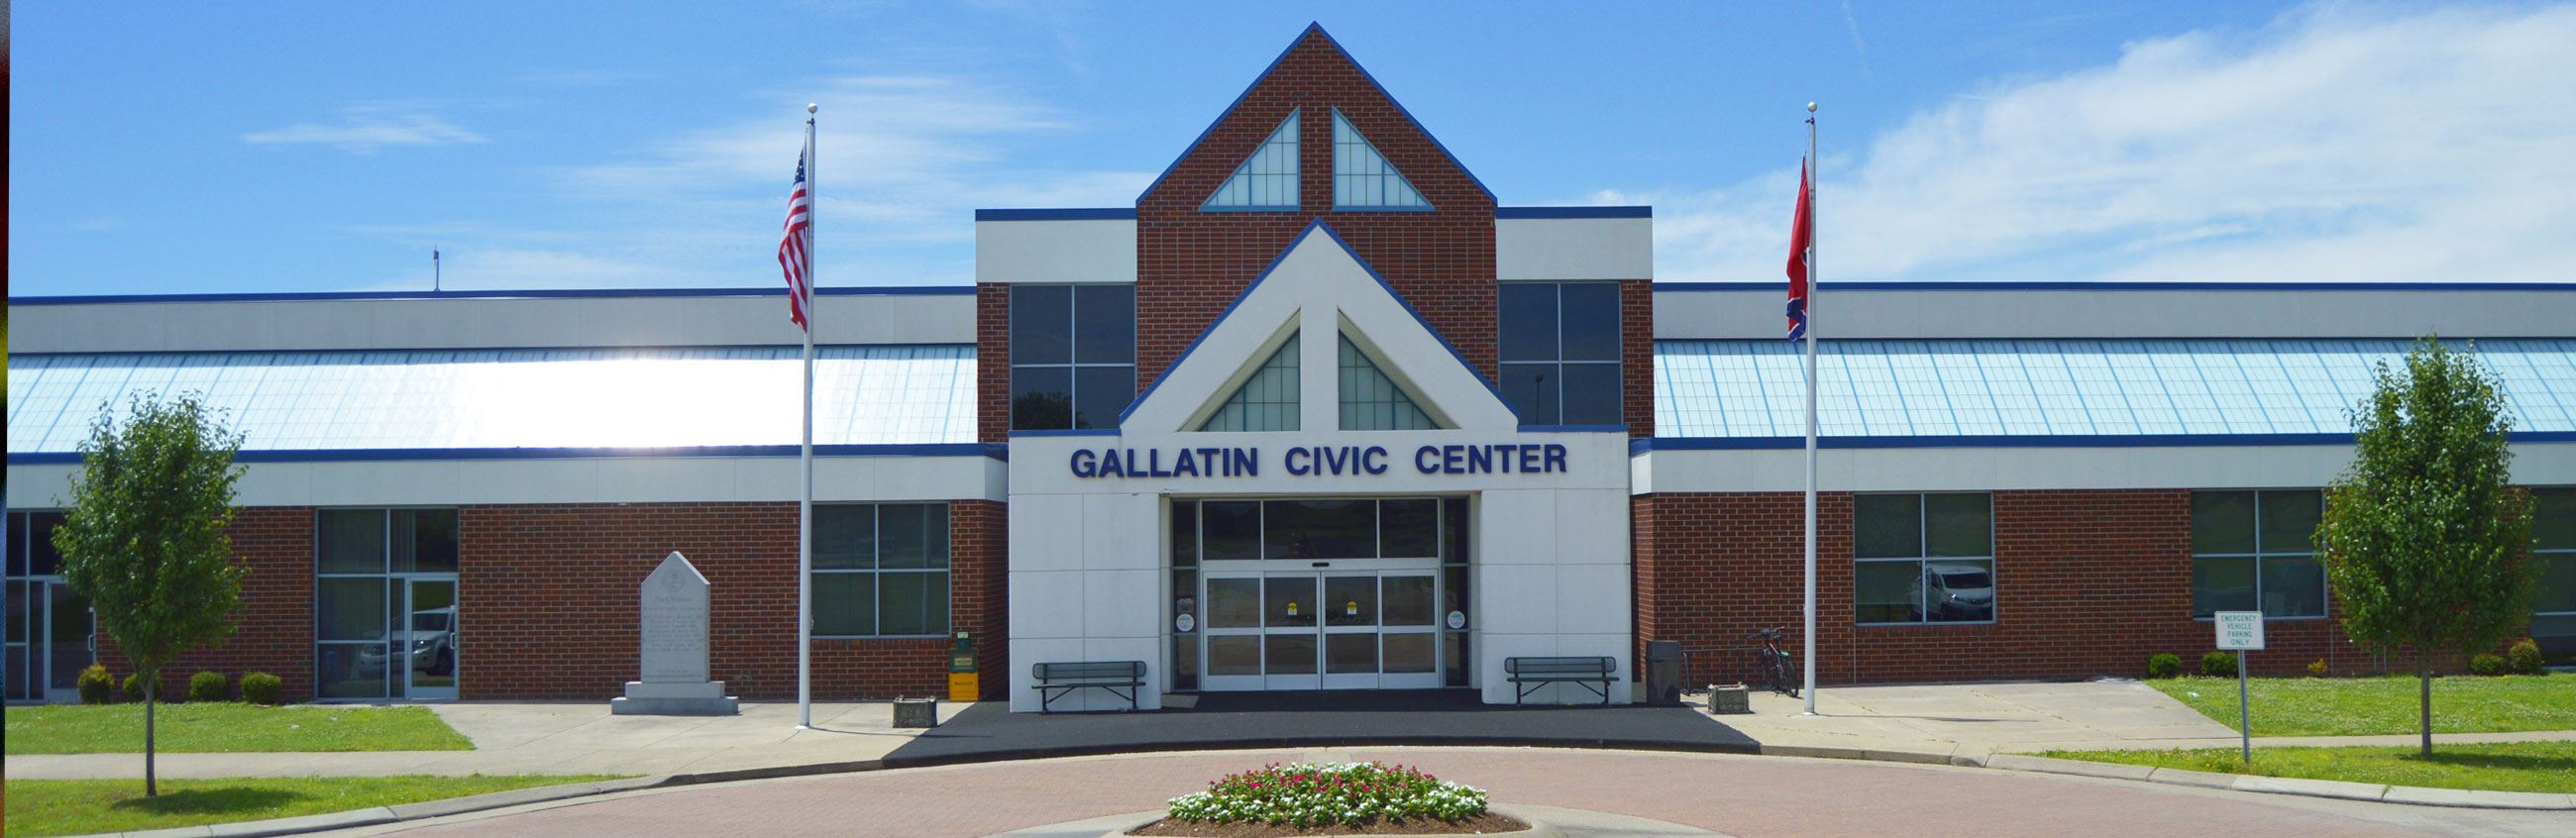 Front doors of Gallatin Civic Center